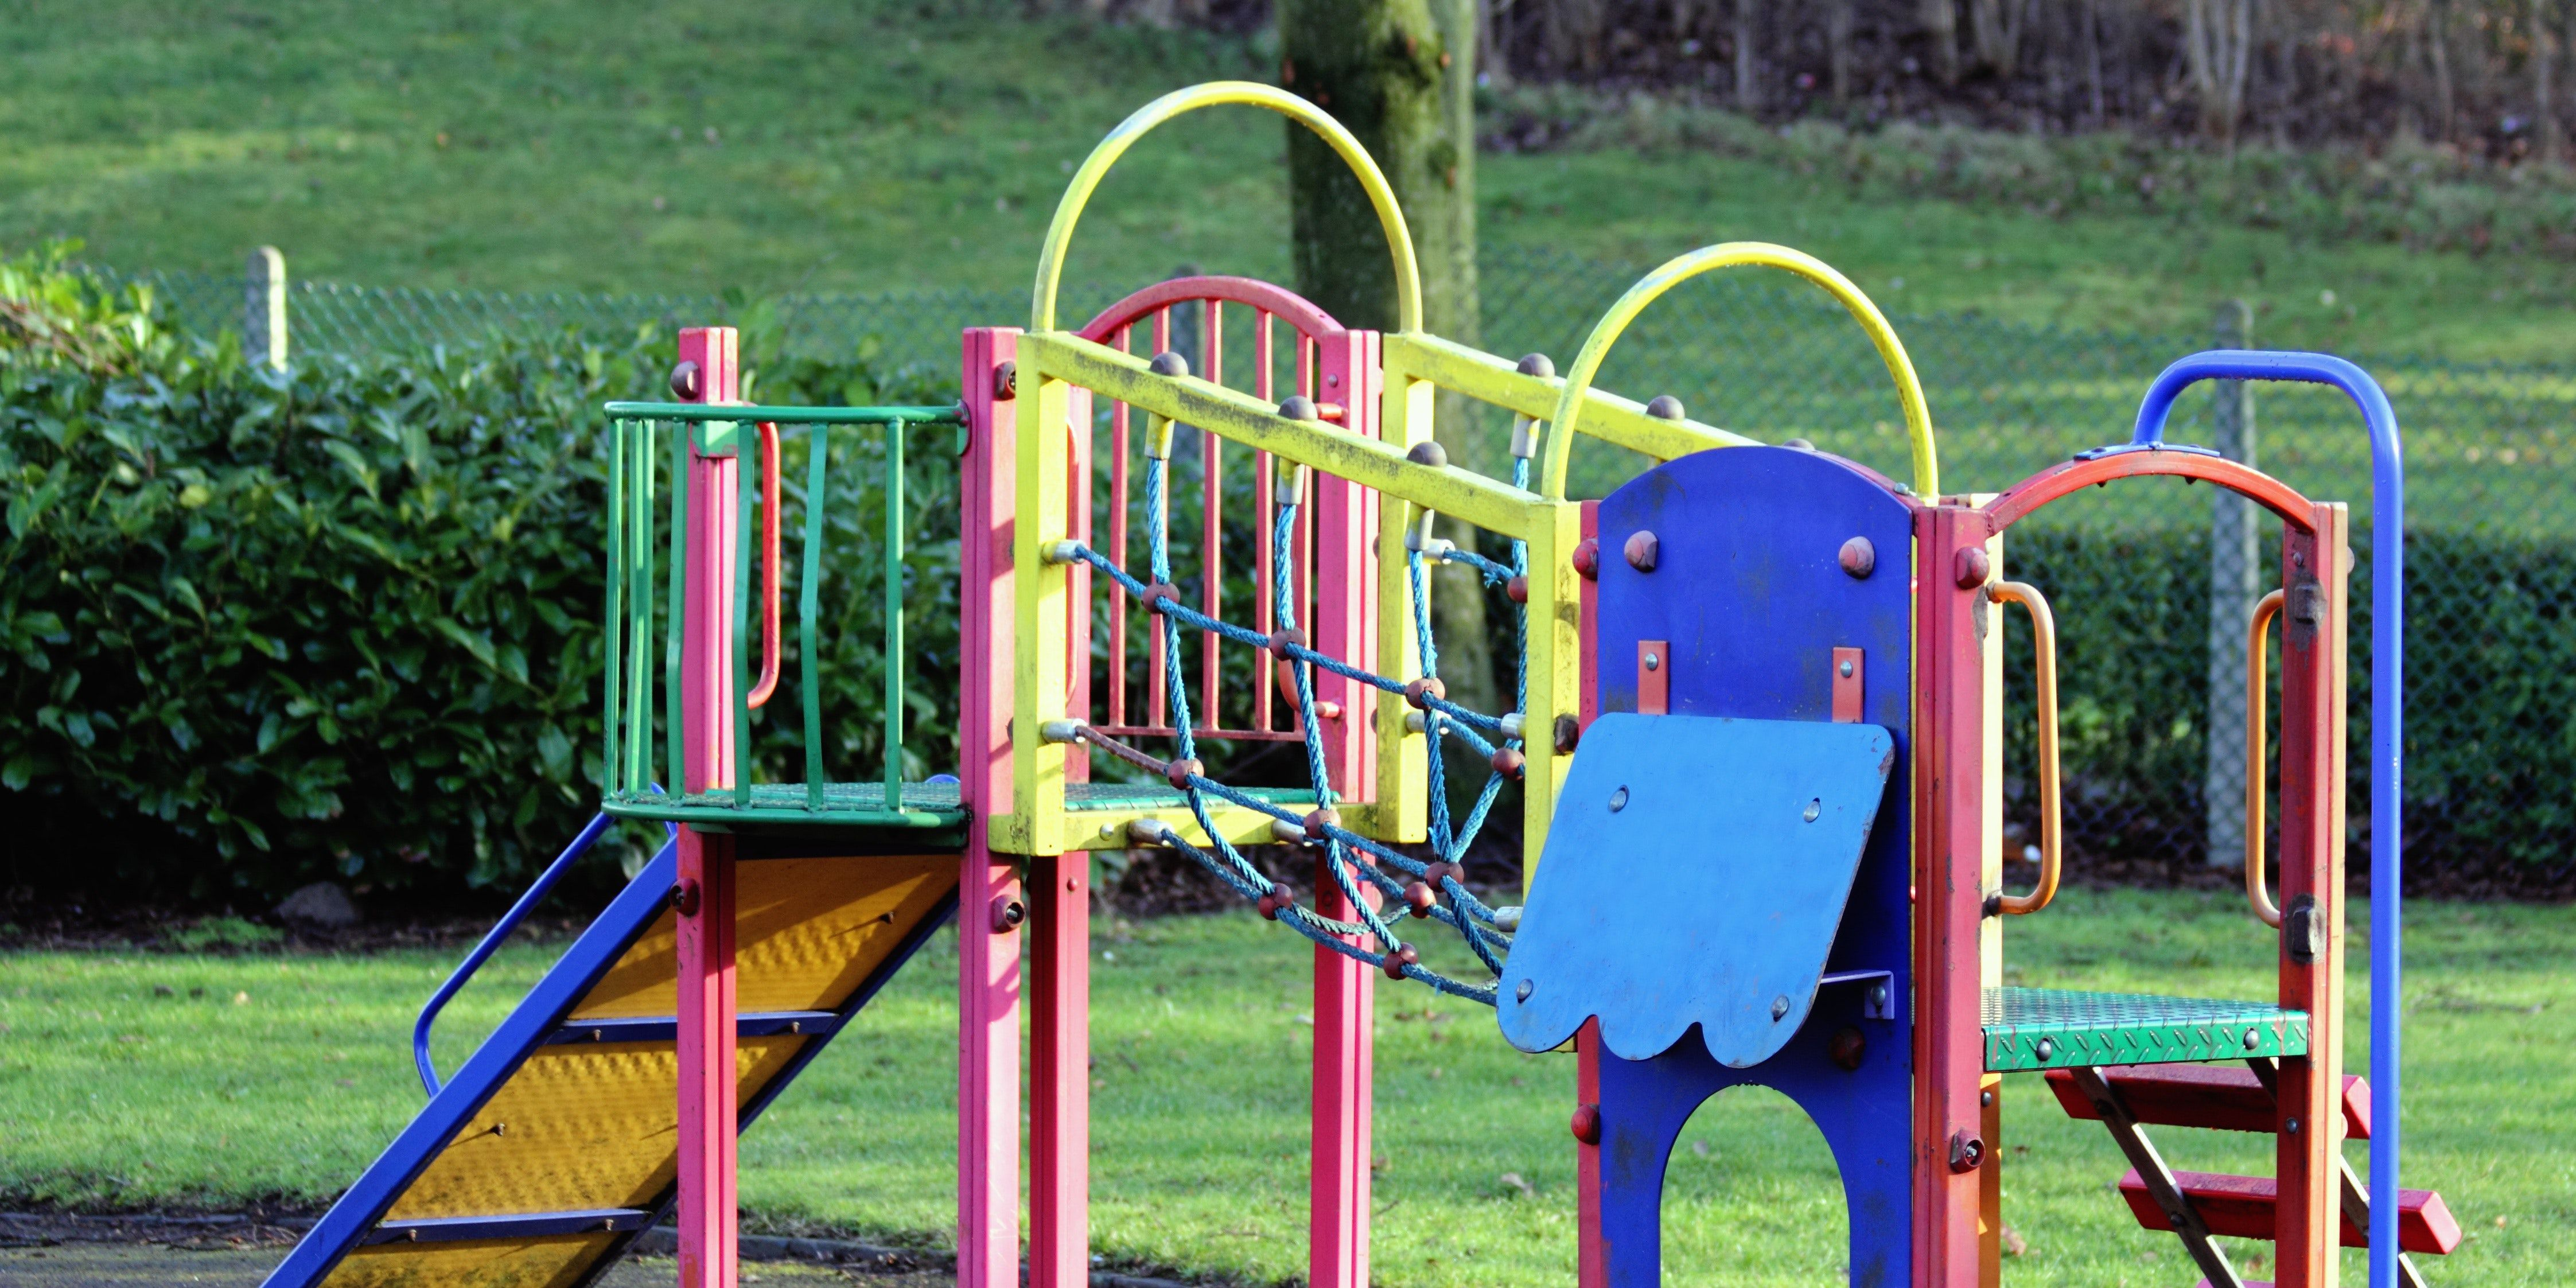 Schools experimenting with 'roughhousing zones' at recess